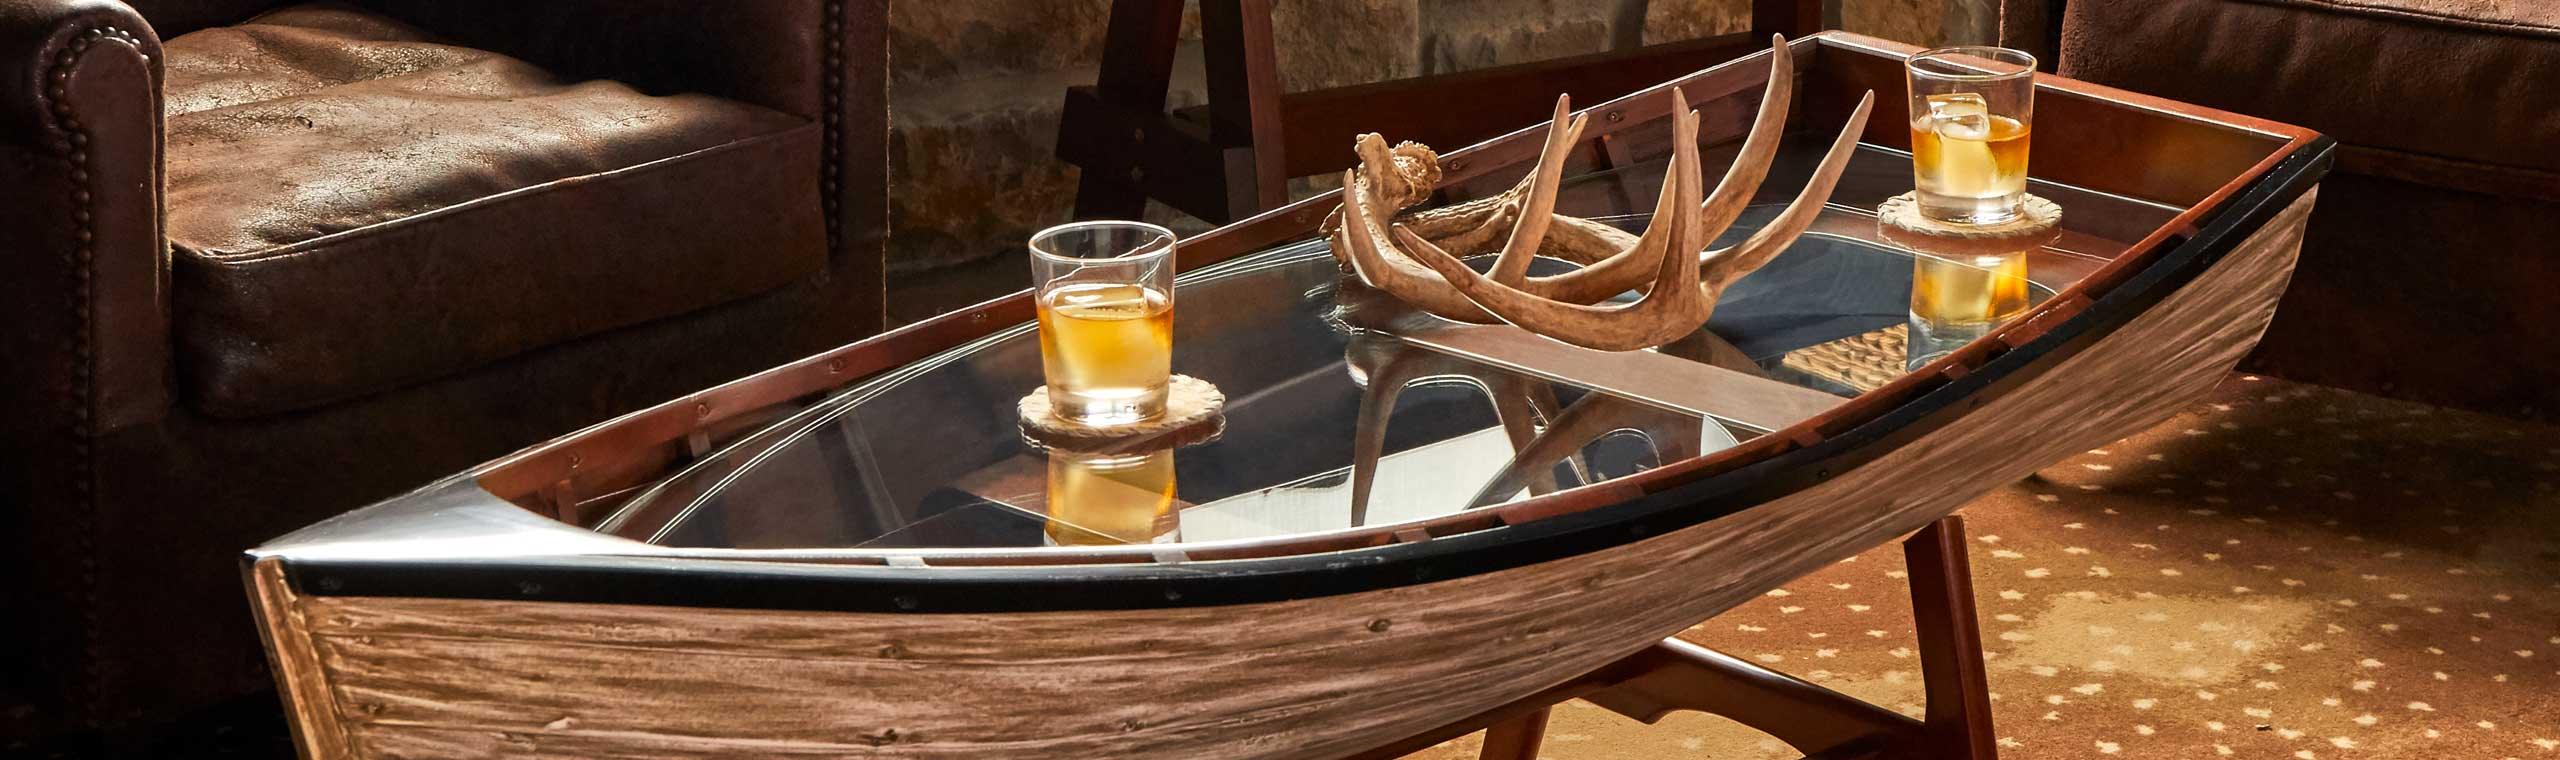 Wooden boat with glass on the inside to make it a perfect coffee table